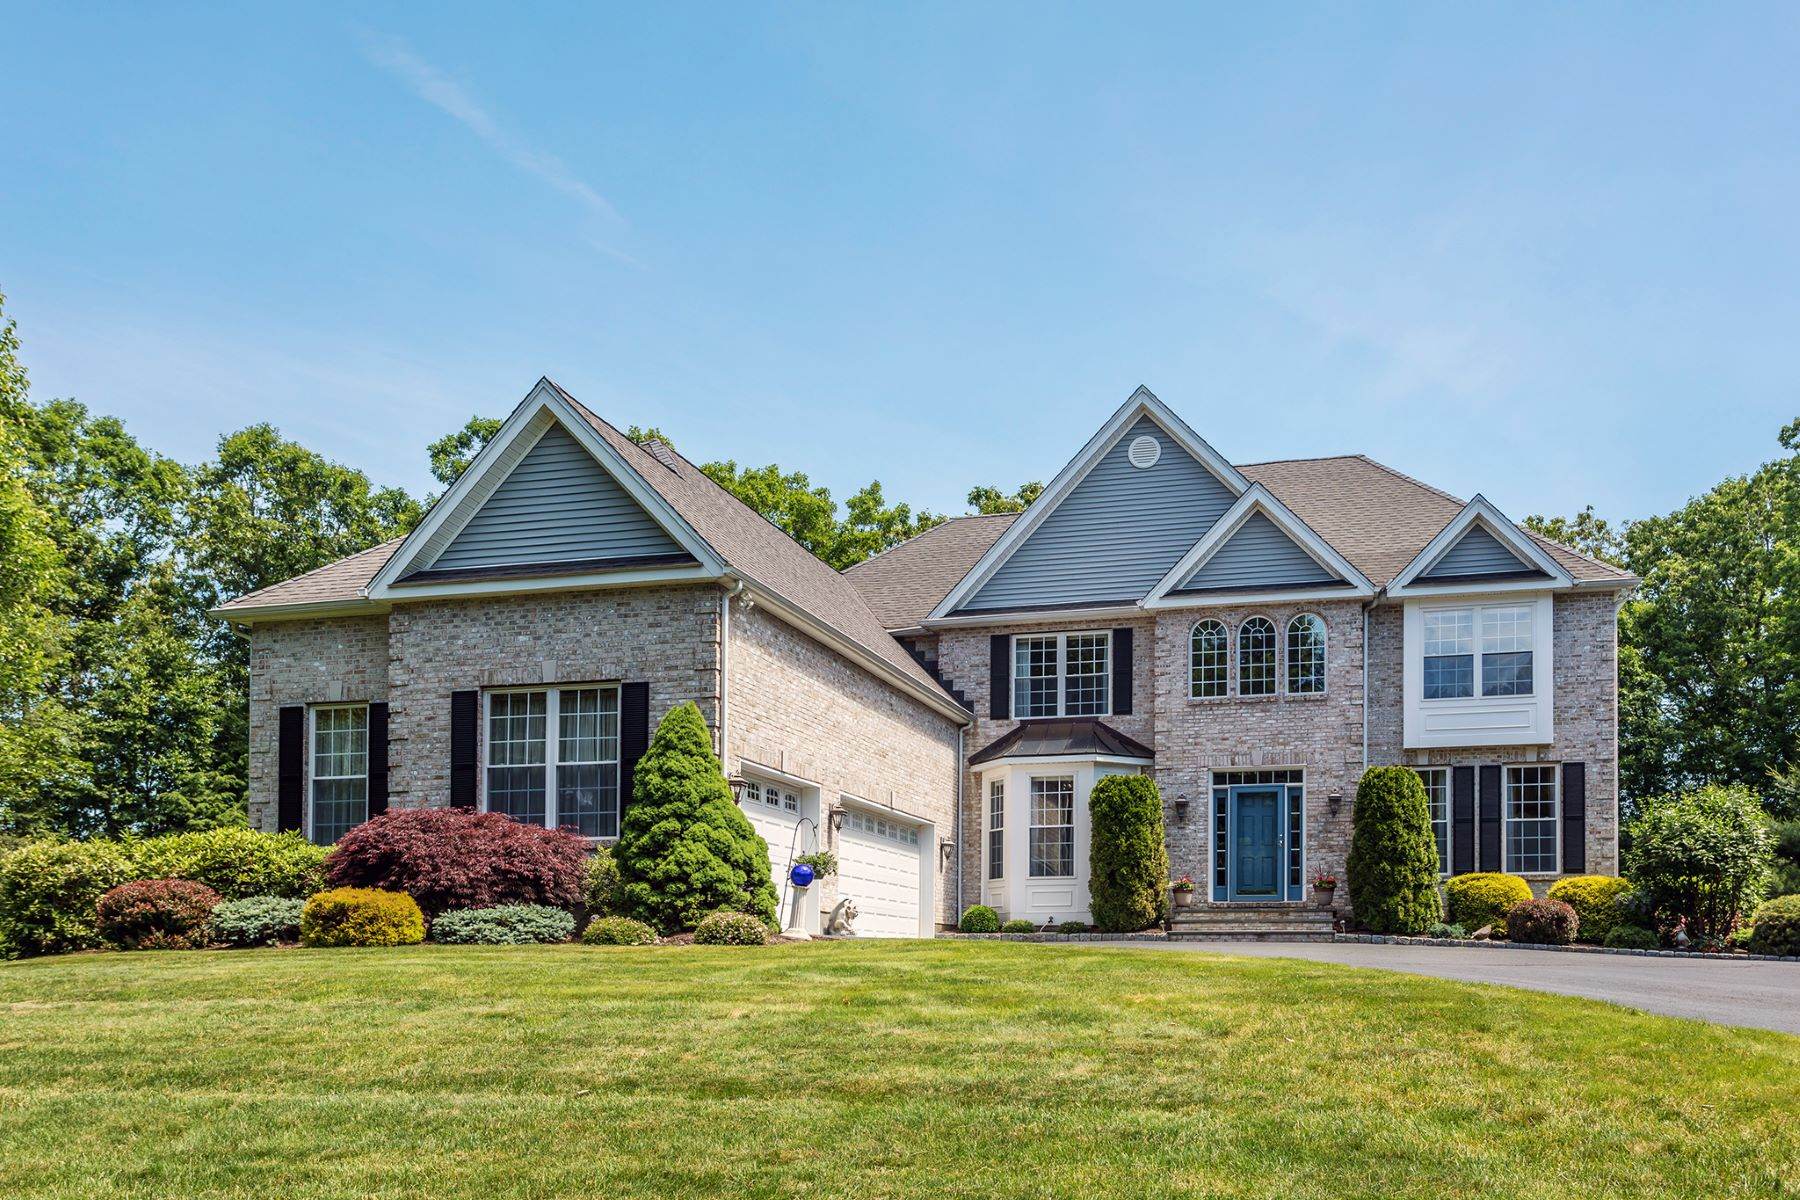 Single Family Homes for Active at 43 Birchwood Lane Woodbury, Connecticut 06798 United States